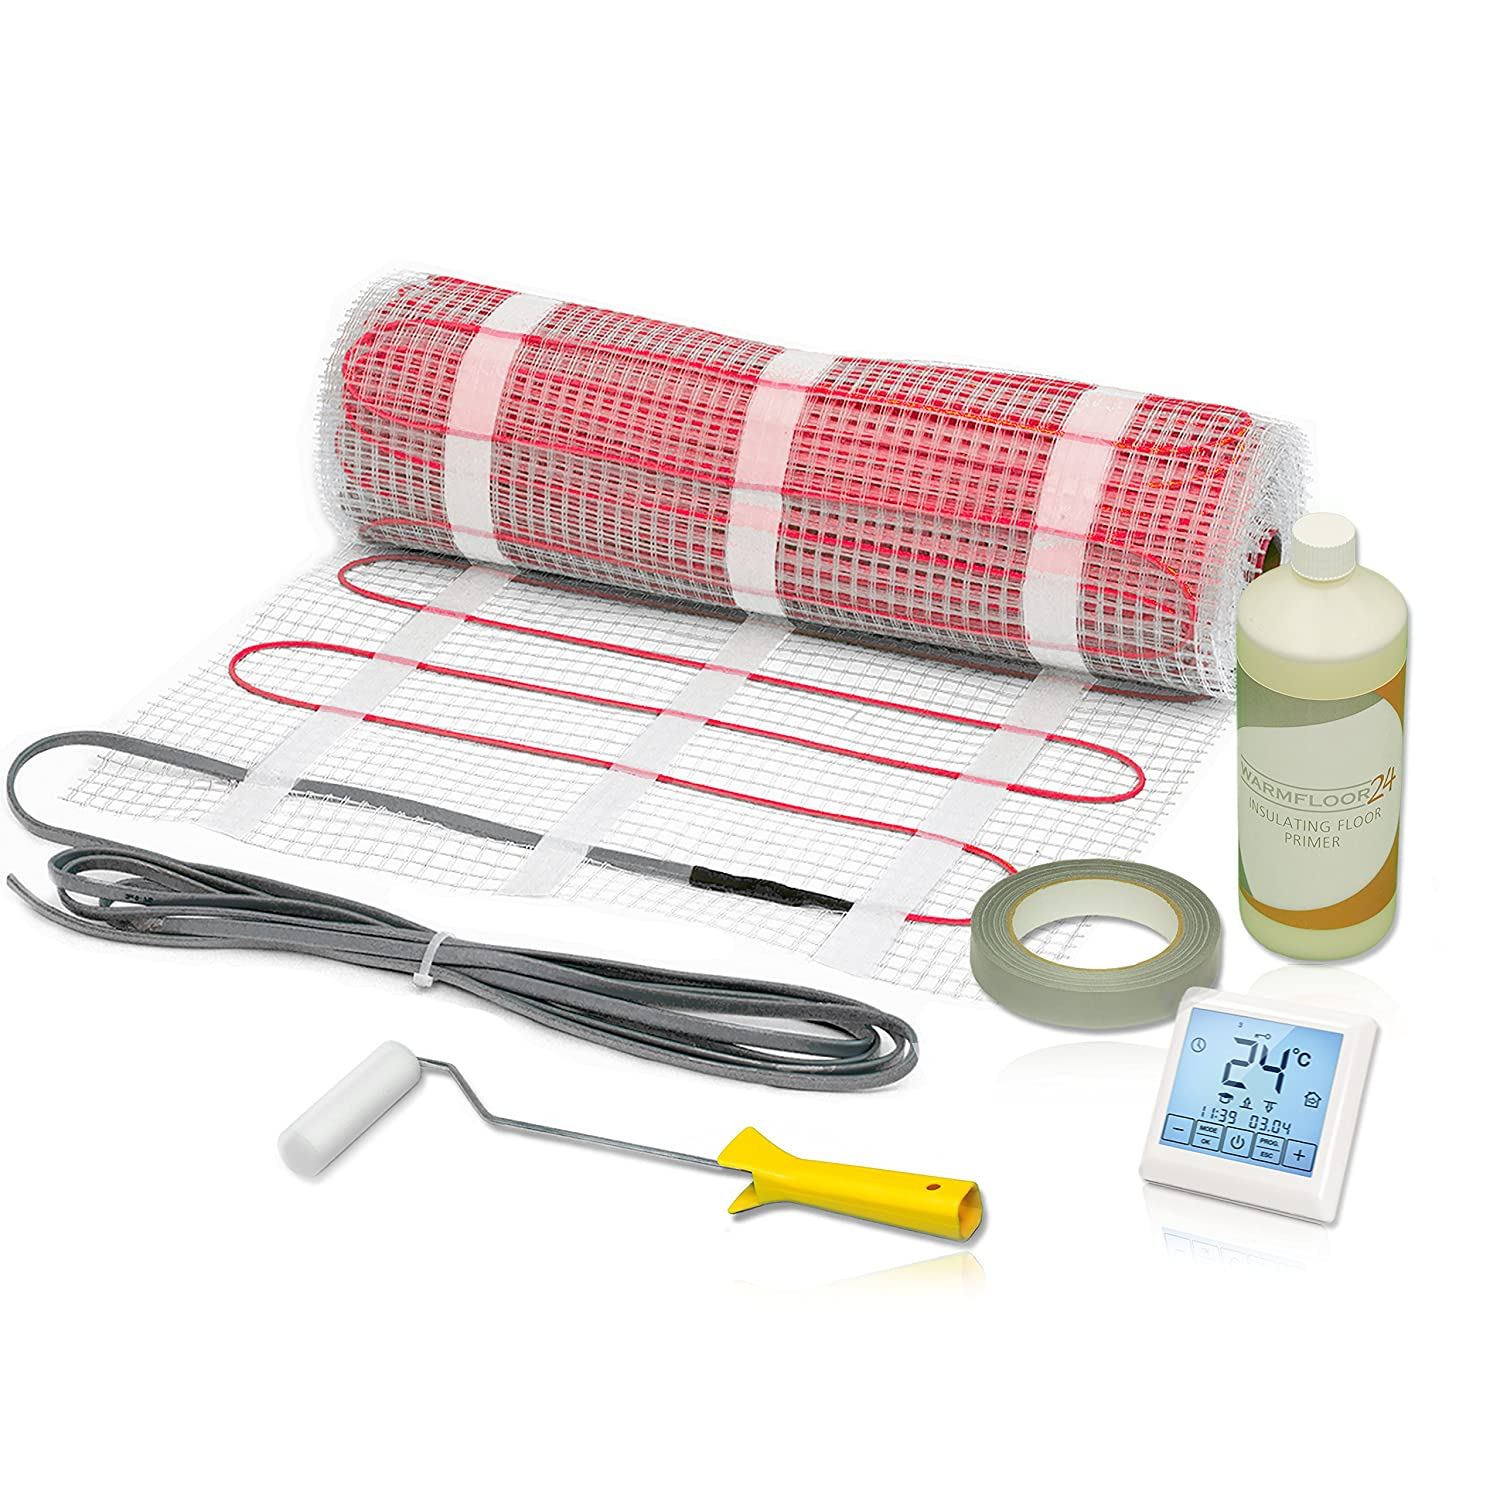 Electric Underfloor Heating Mat Kit for Tiles 150 W/m² • with Touch Screen Thermostat • ALL SIZES • 1.6 m² Warm-On